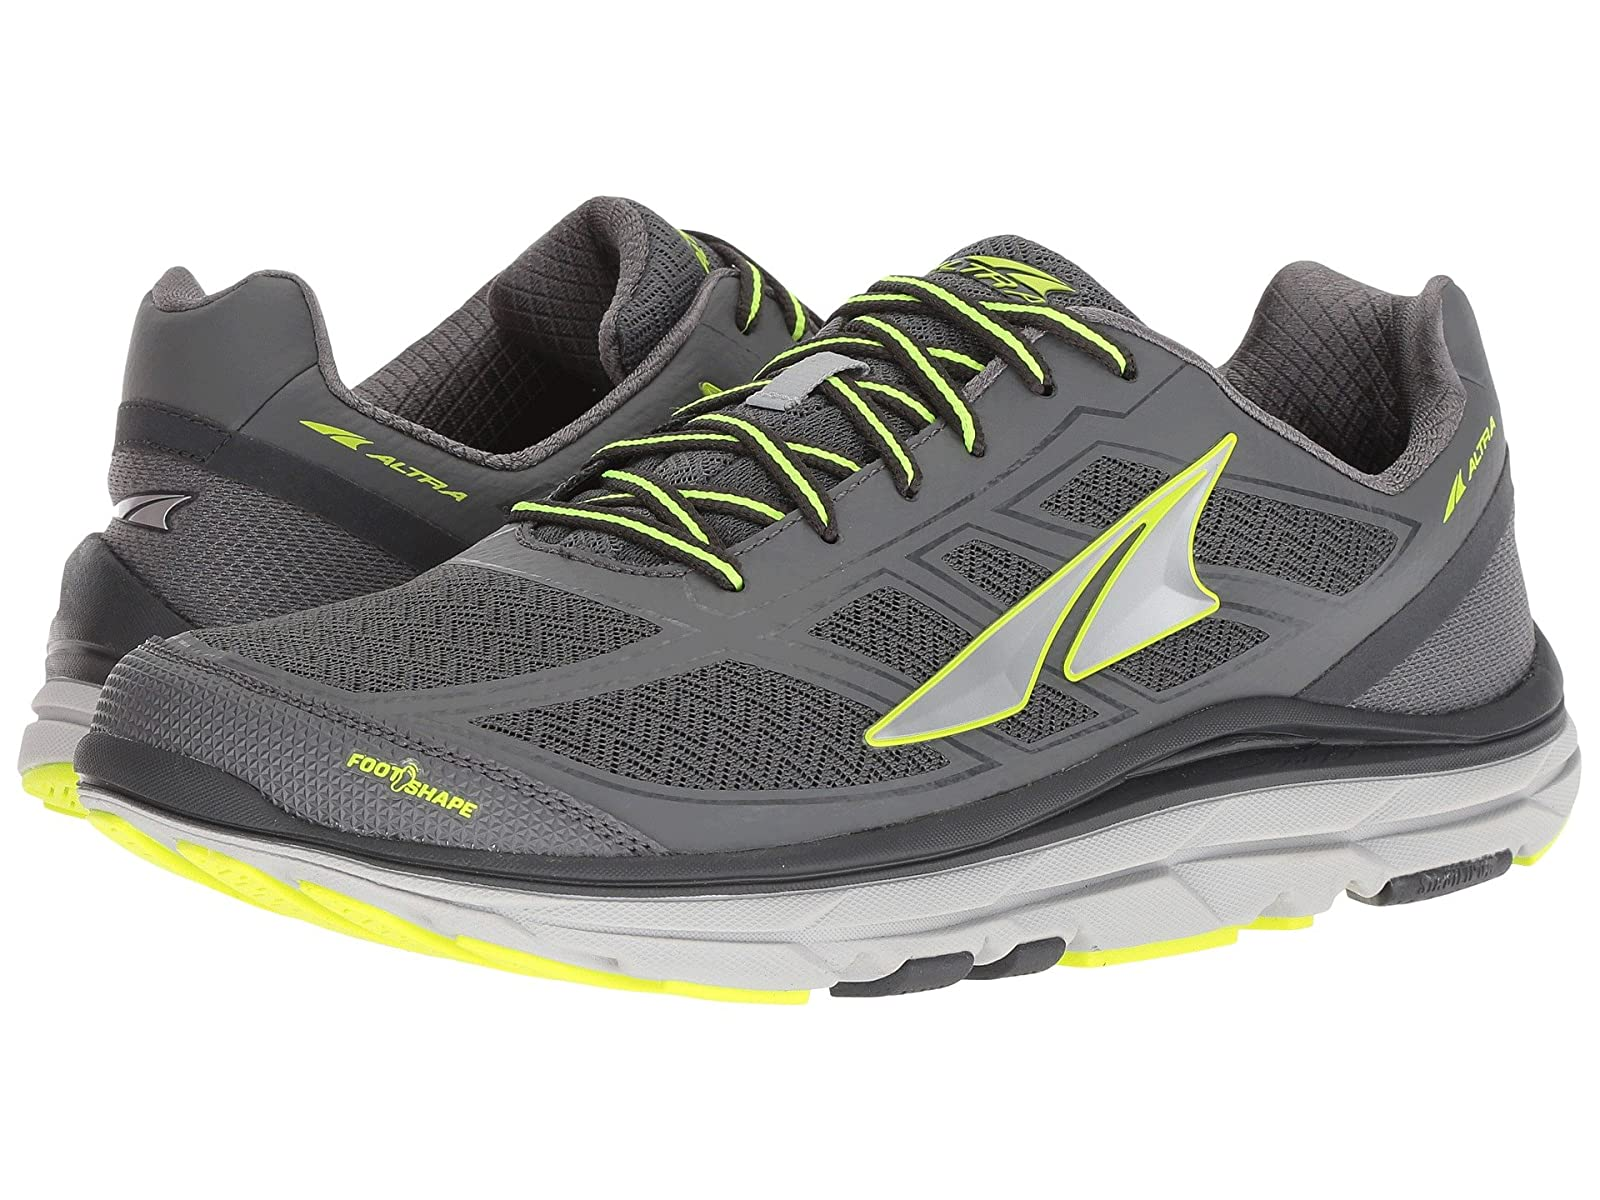 Altra Footwear Provision 3.5Atmospheric grades have affordable shoes